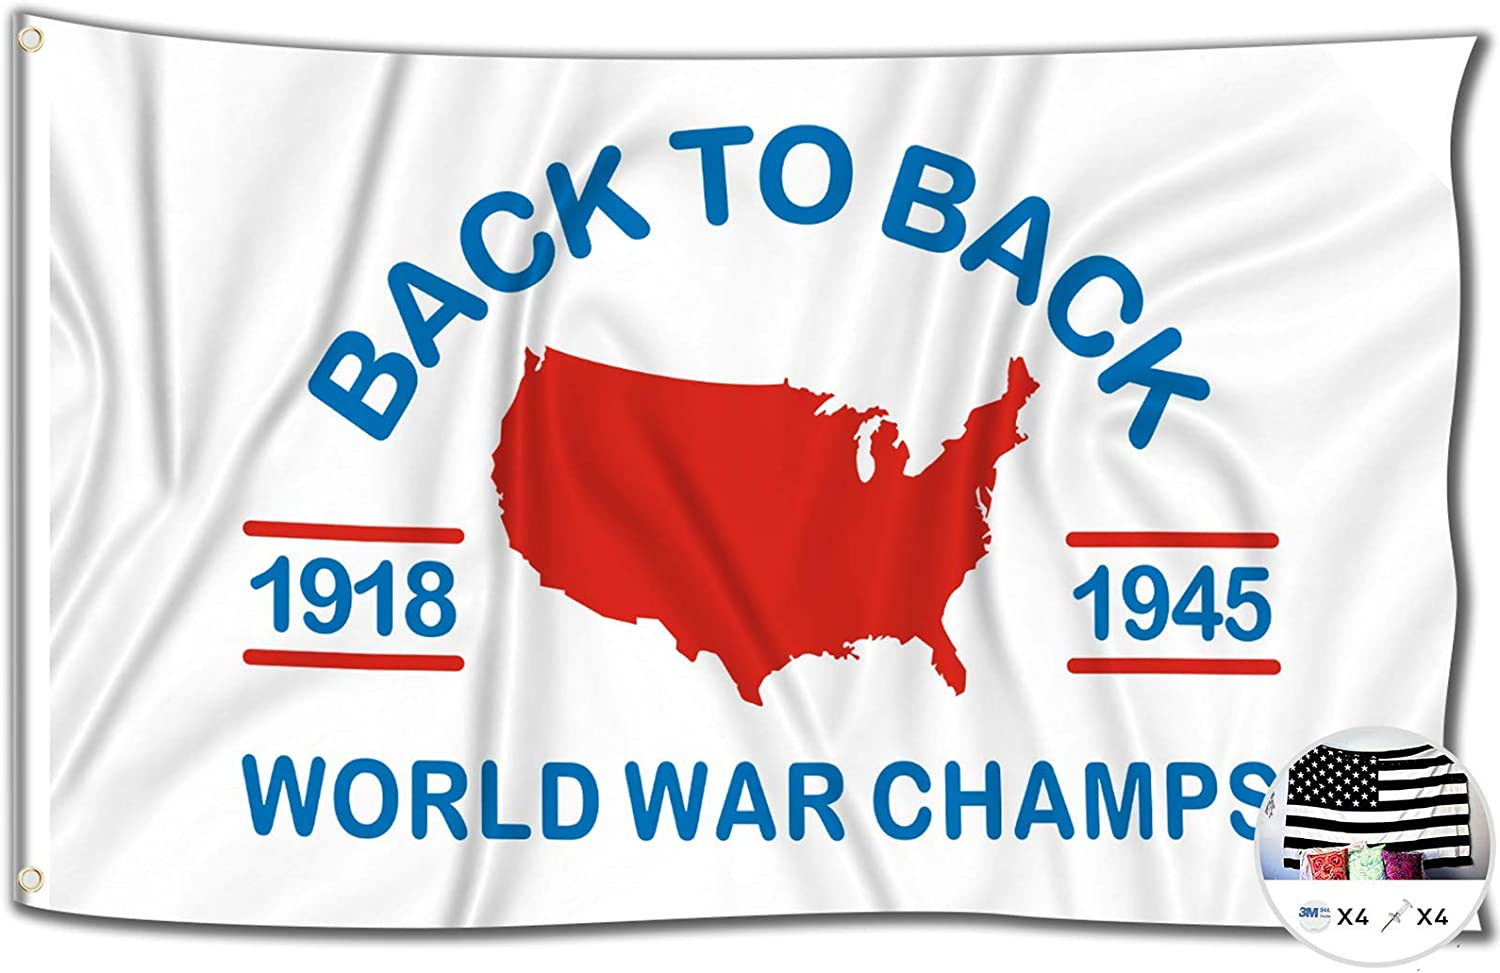 World Dallas Mall Max 82% OFF War Champs Flag 3x5 Feet Funny to Poster Back Banner